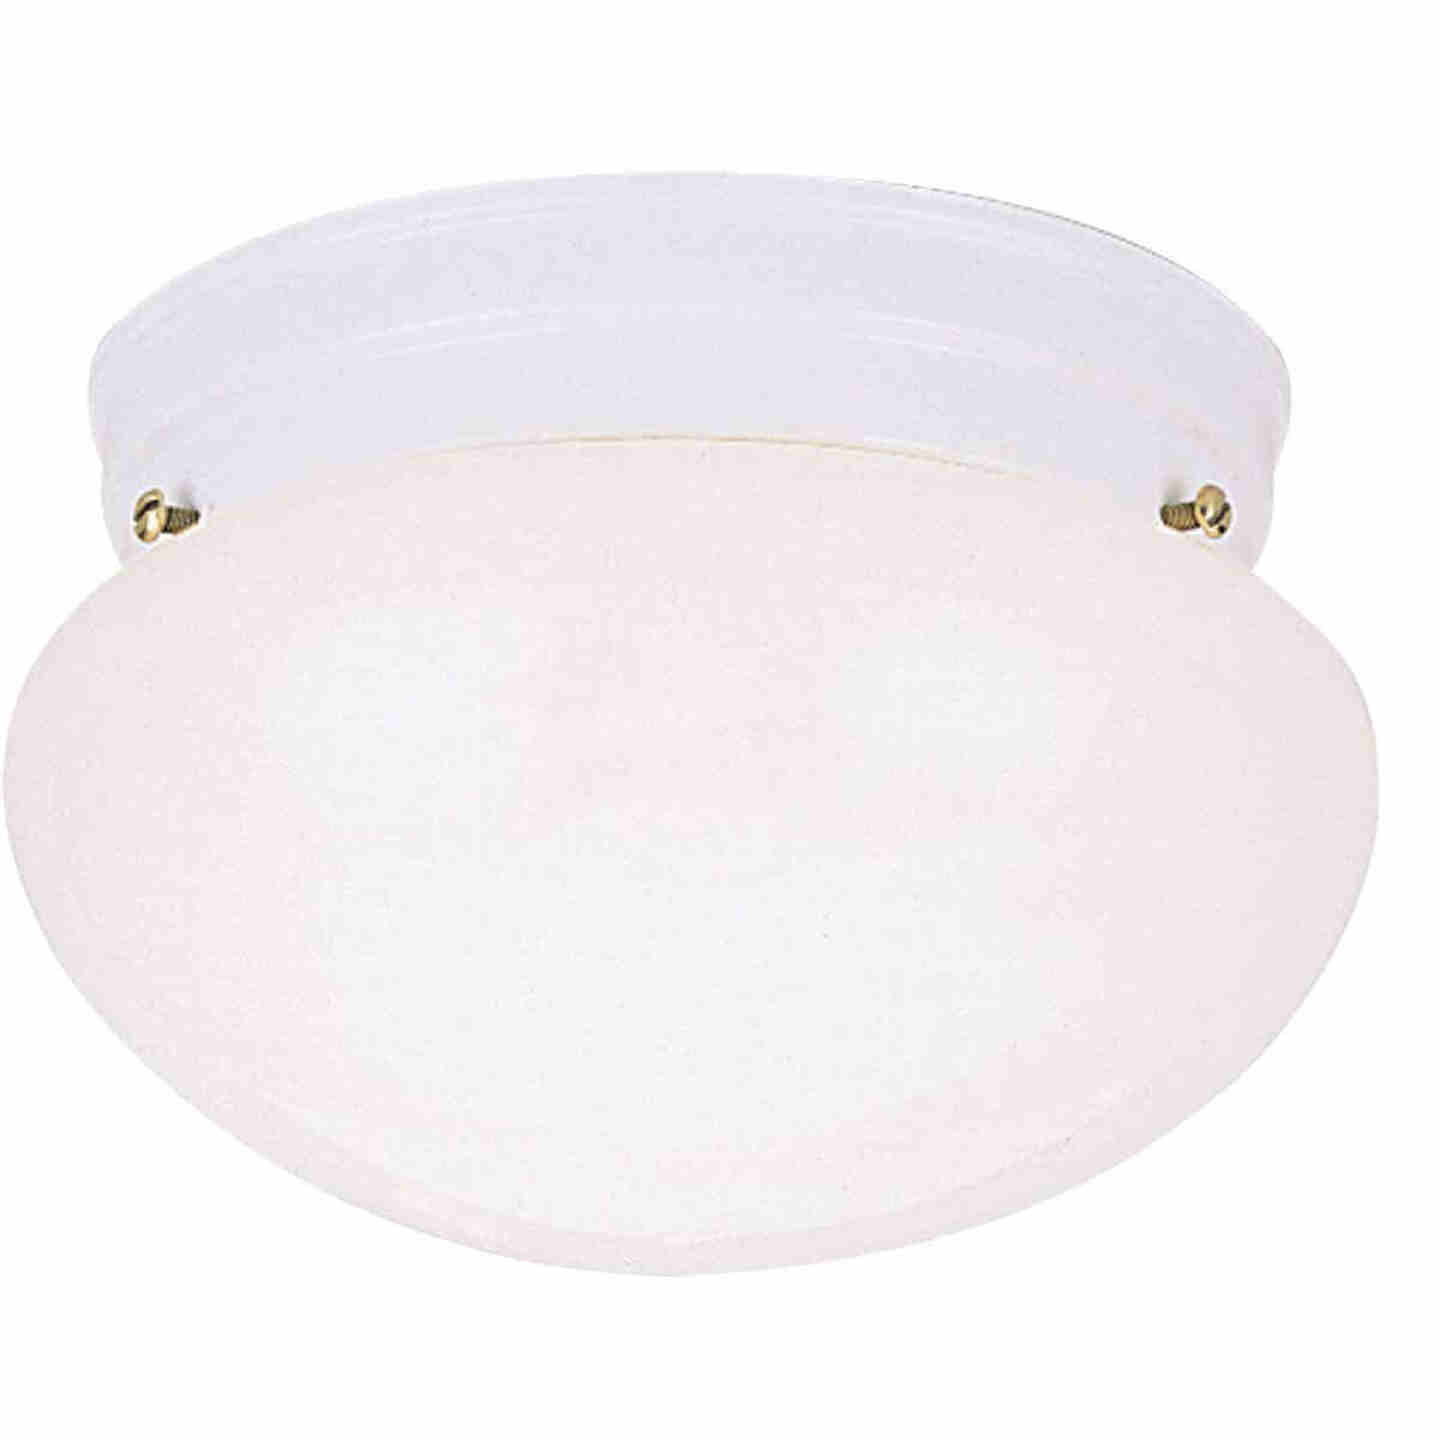 Home Impressions 9-1/2 In. White Incandescent Flush Mount Ceiling Light Fixture Image 1